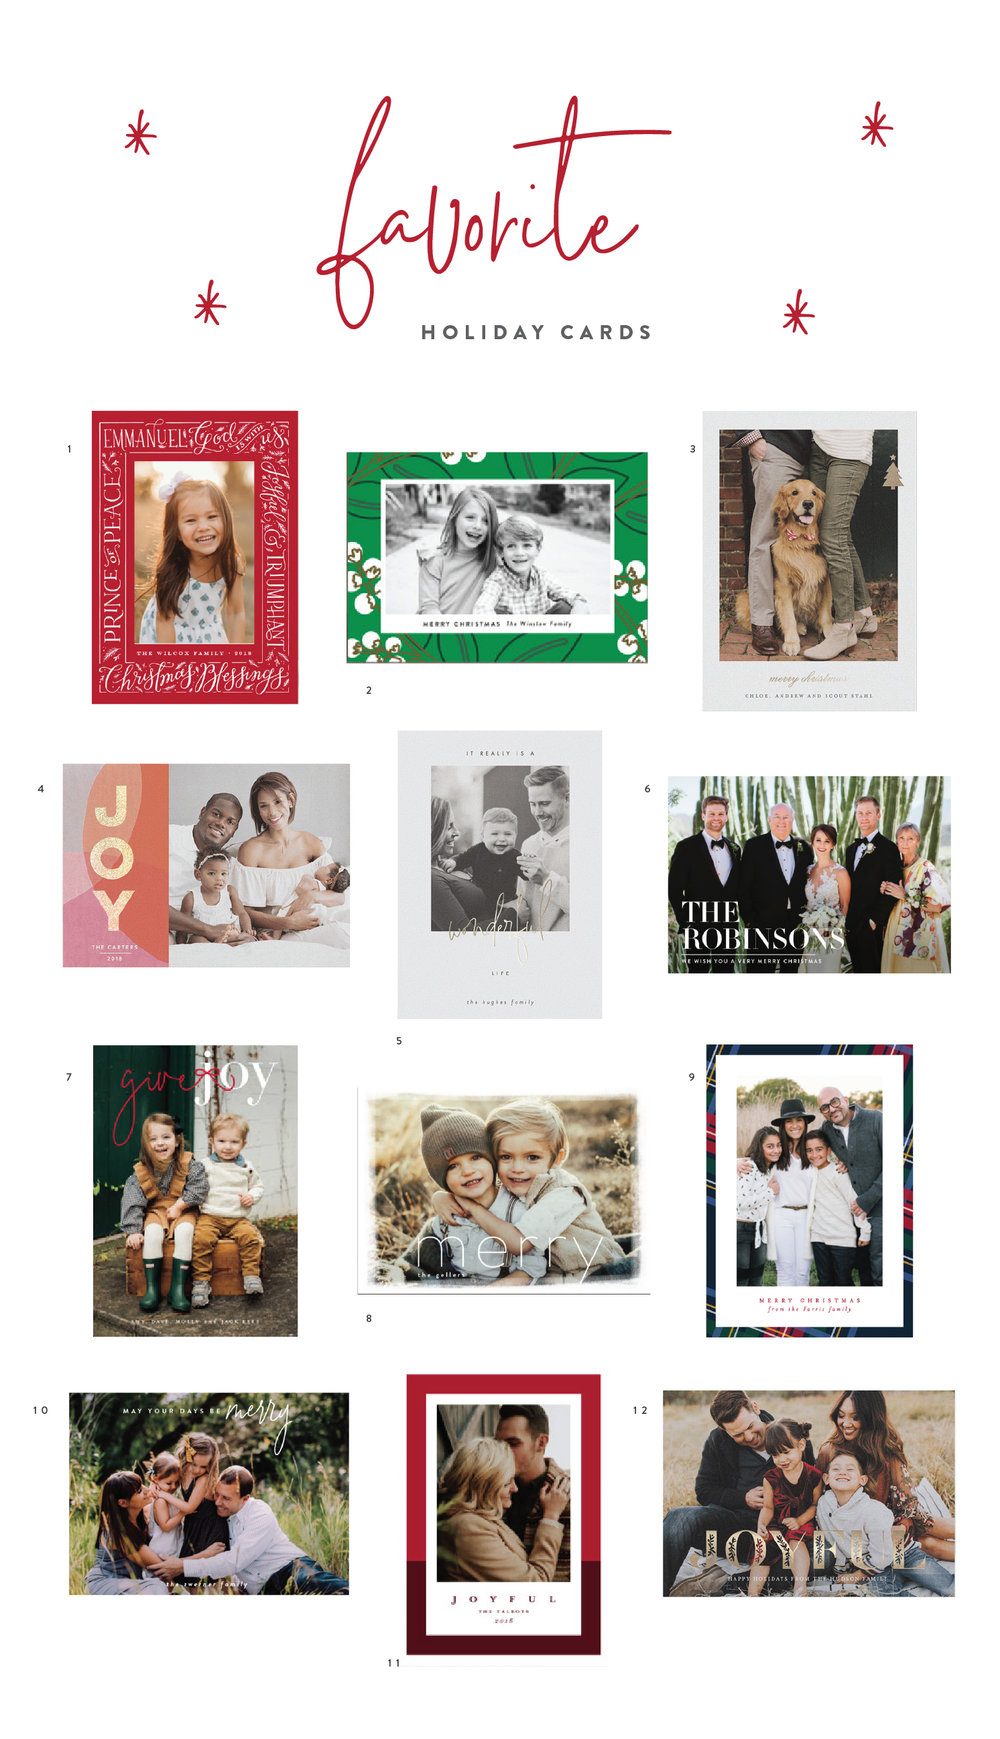 favoriteholidaycards_112118.jpg